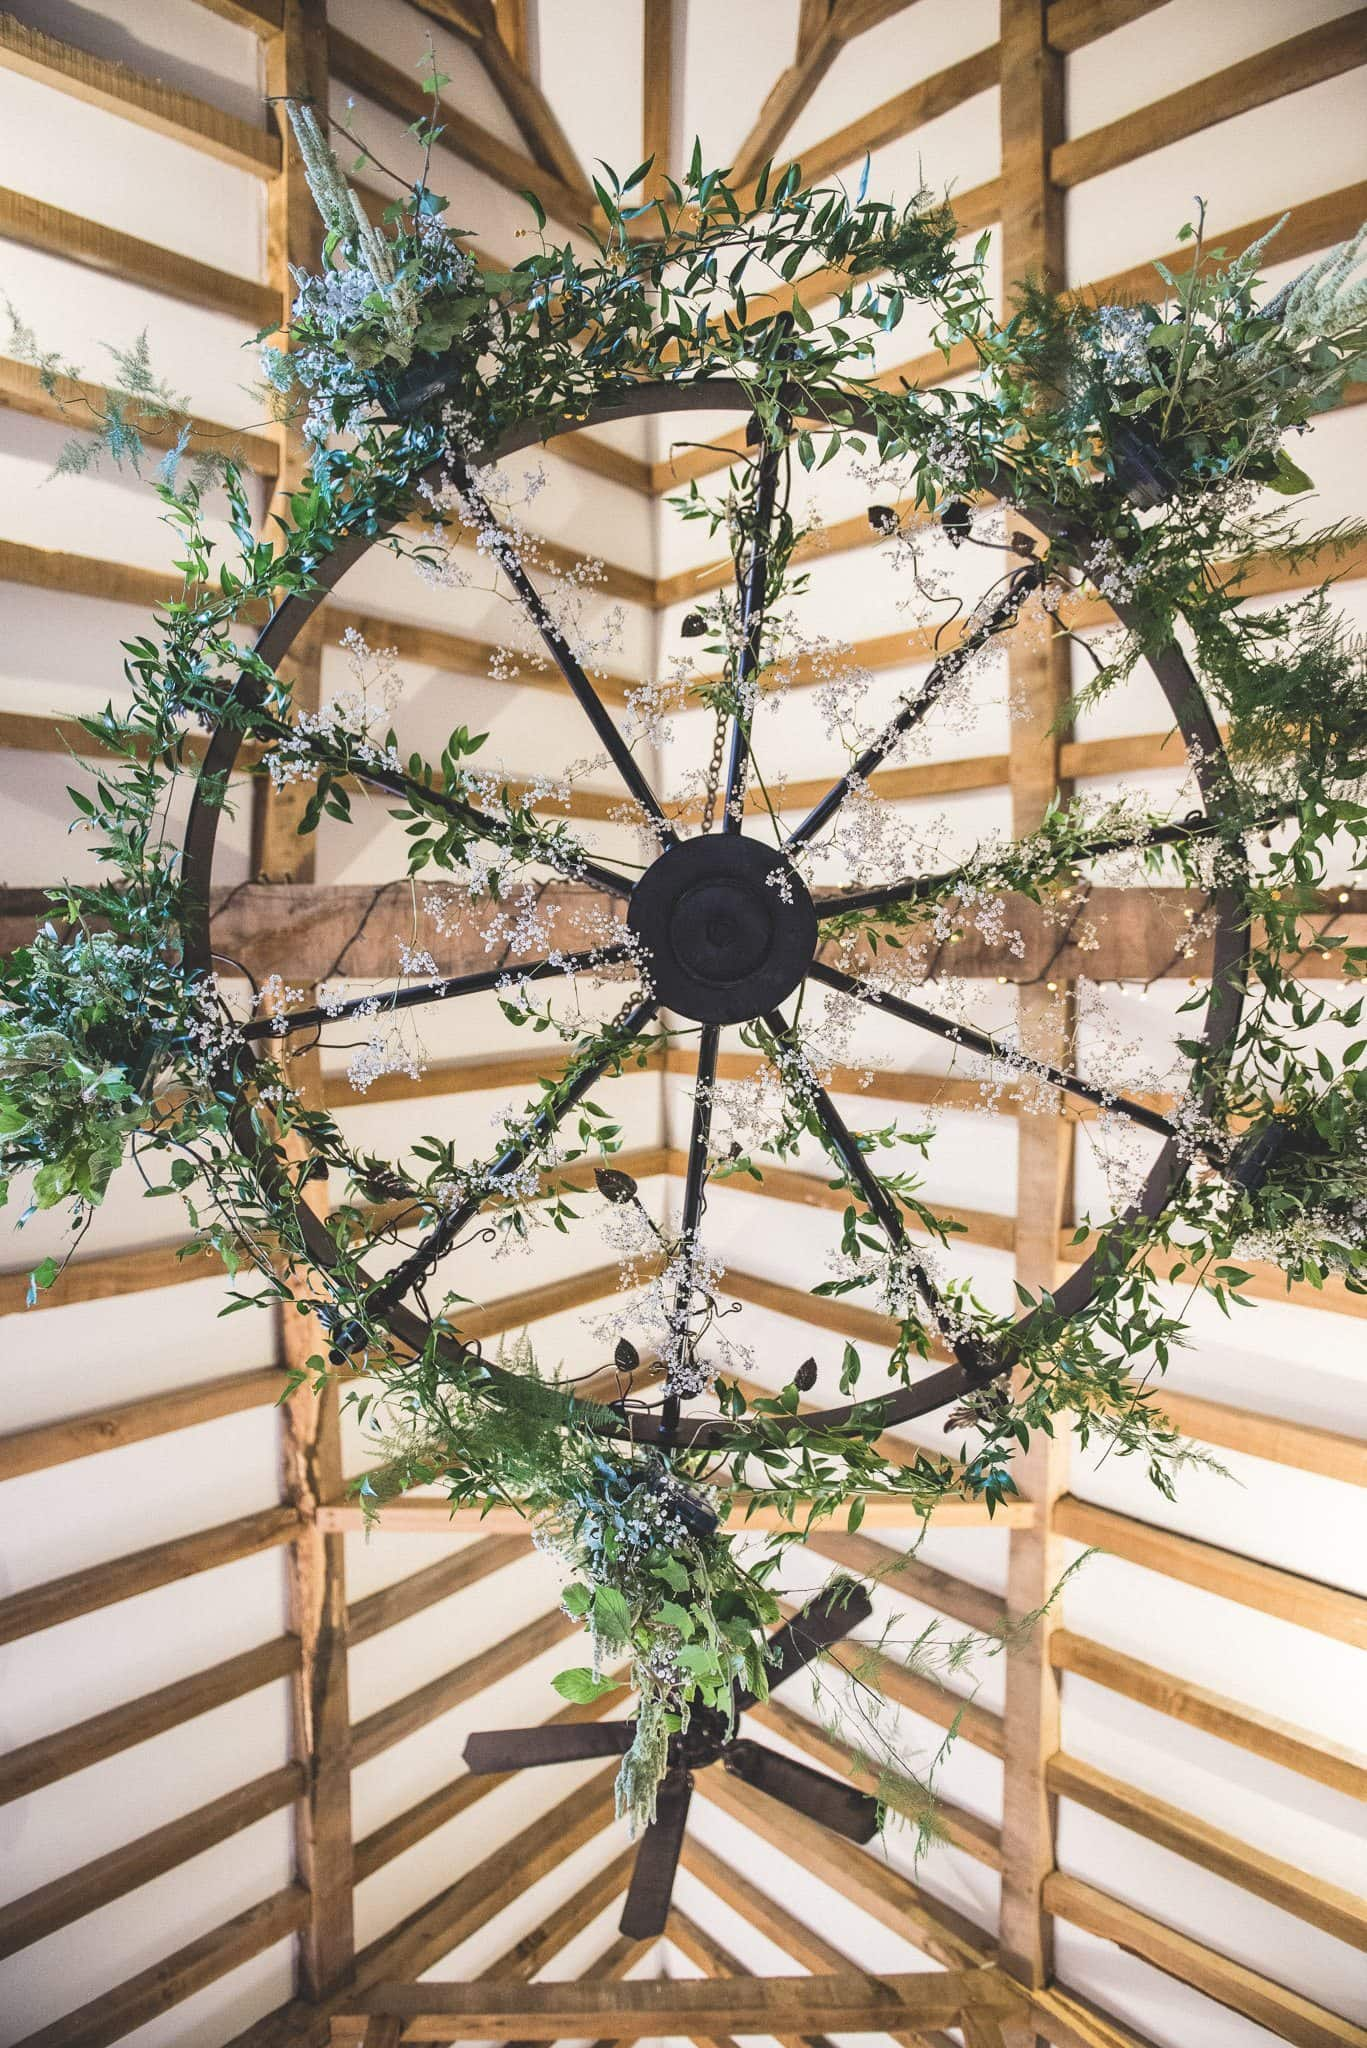 A foliage chandelier hanging in the rafters of a Gate Street Barn Wedding